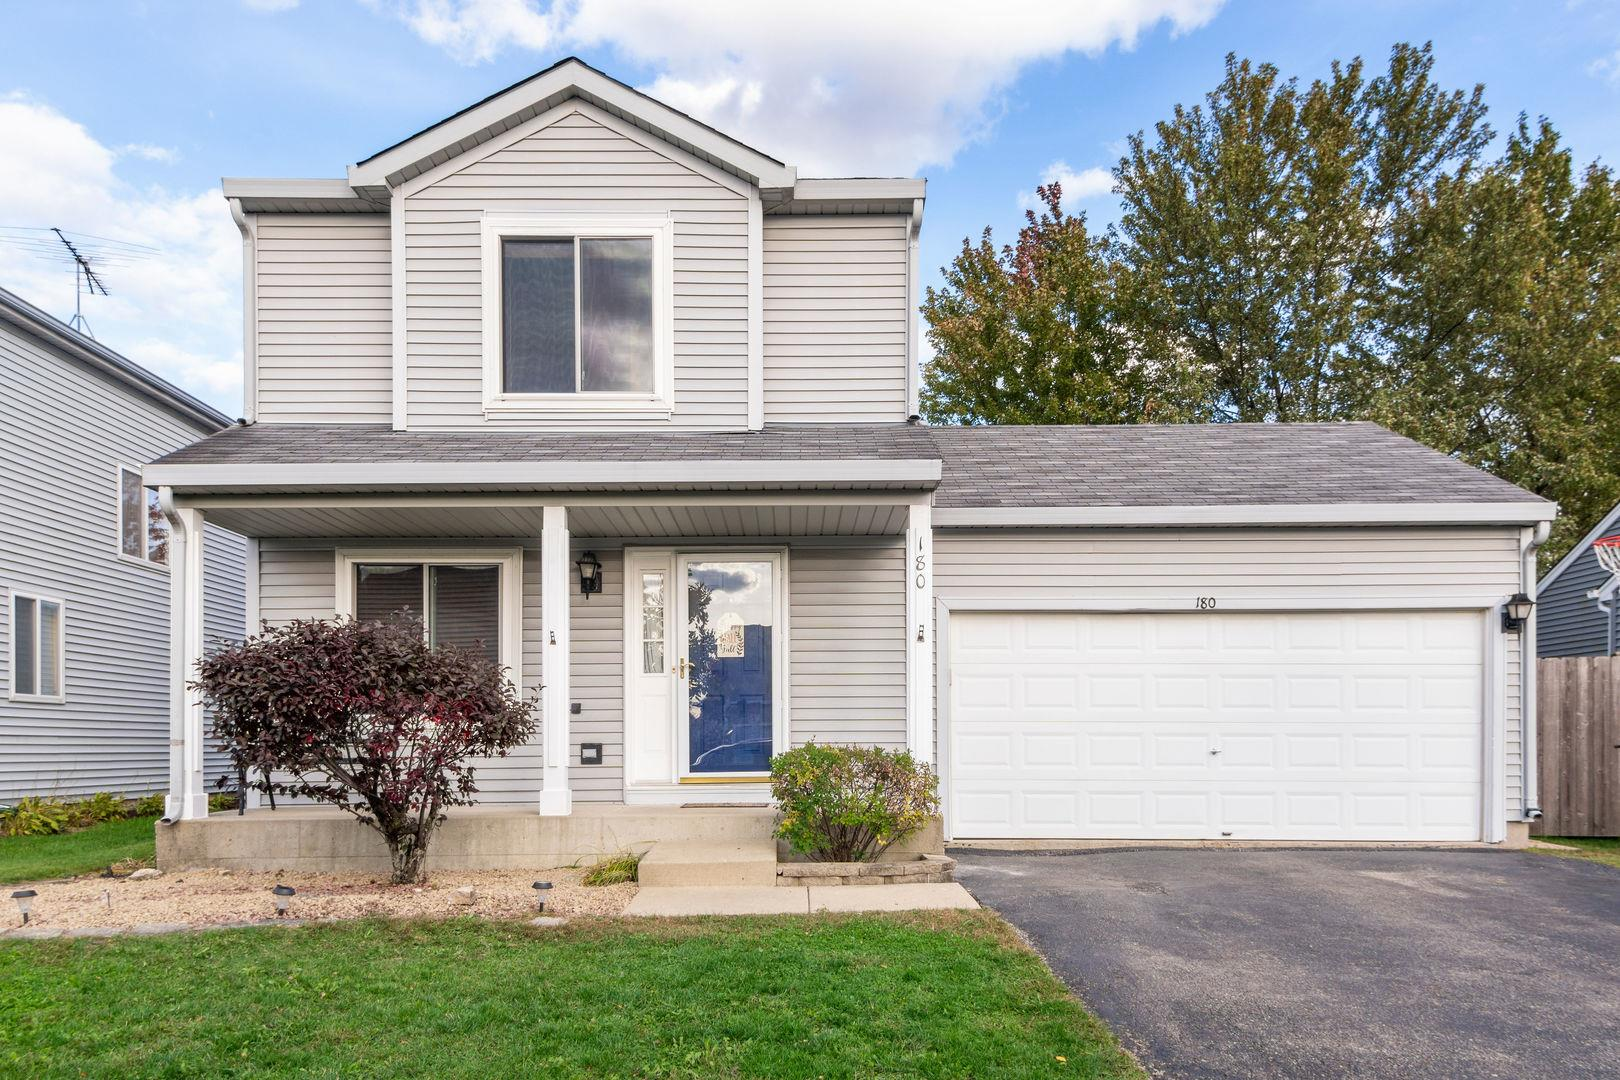 180 BRIDLEWOOD Circle, Lake in the Hills, IL 60156 - #: 10891048